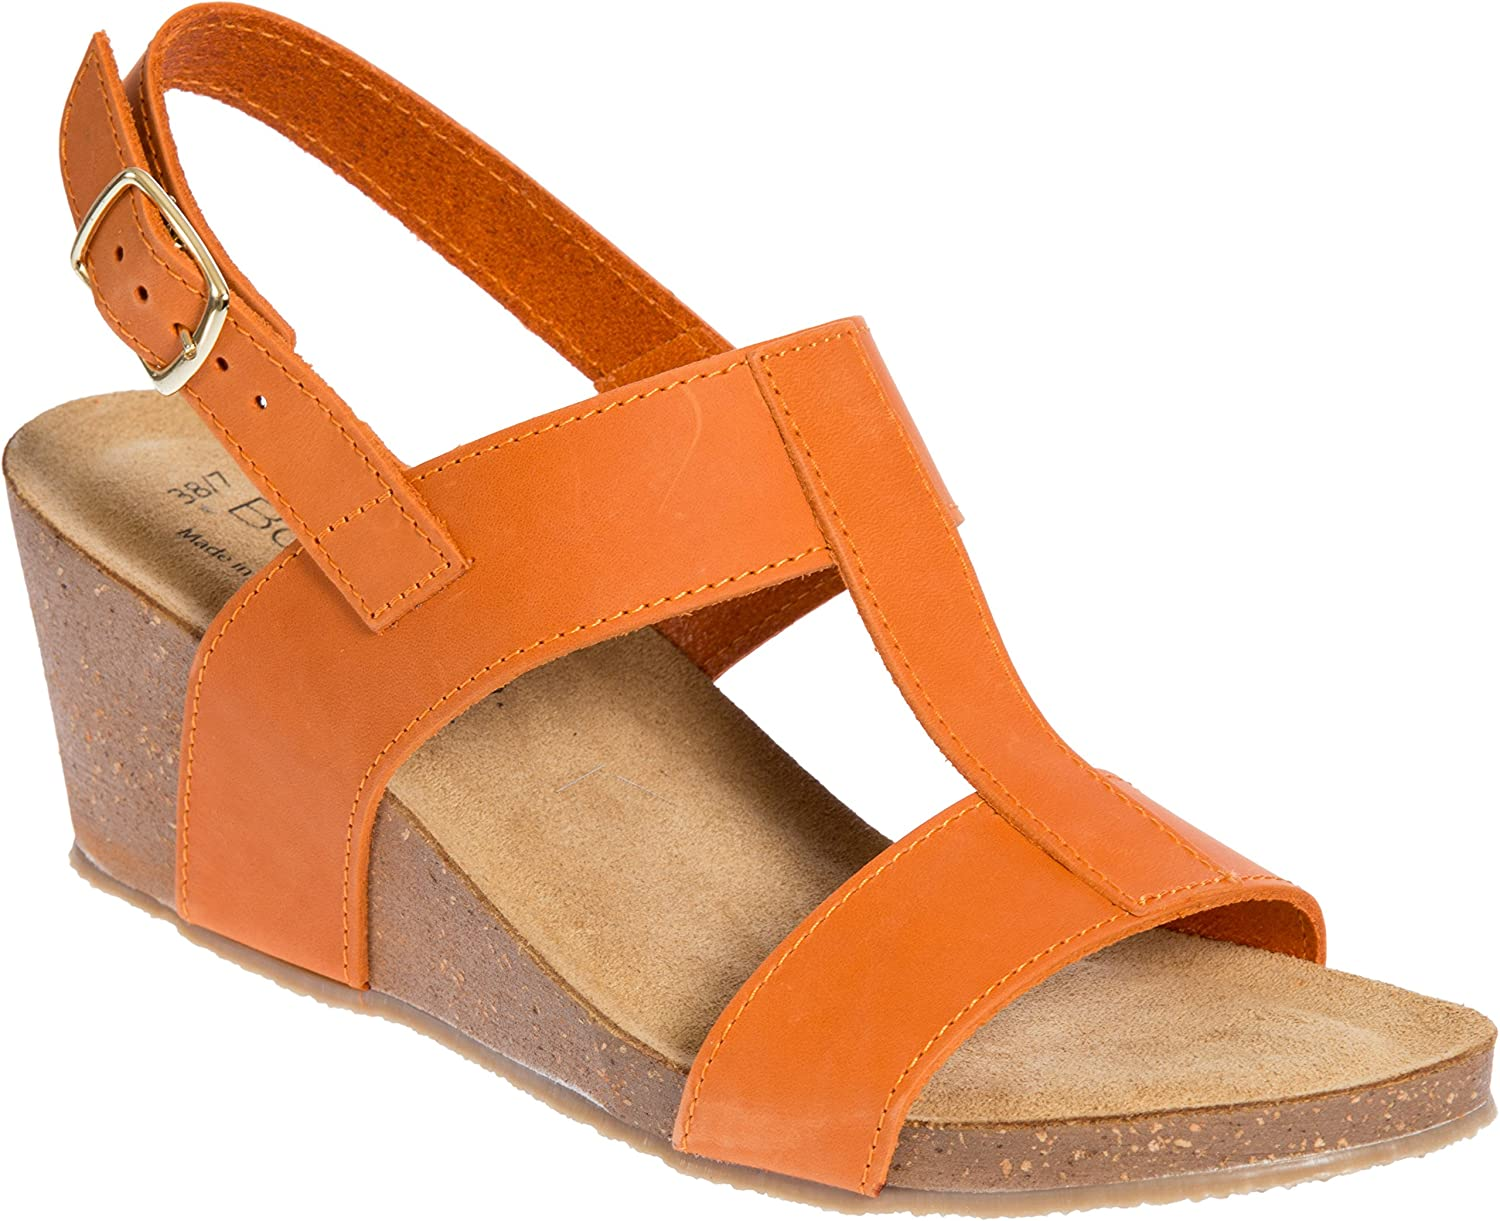 Bos. & Co.. Women's Lust Italian Leather T-Strap Wedge Sandals B07C287SCP EU38|Orange